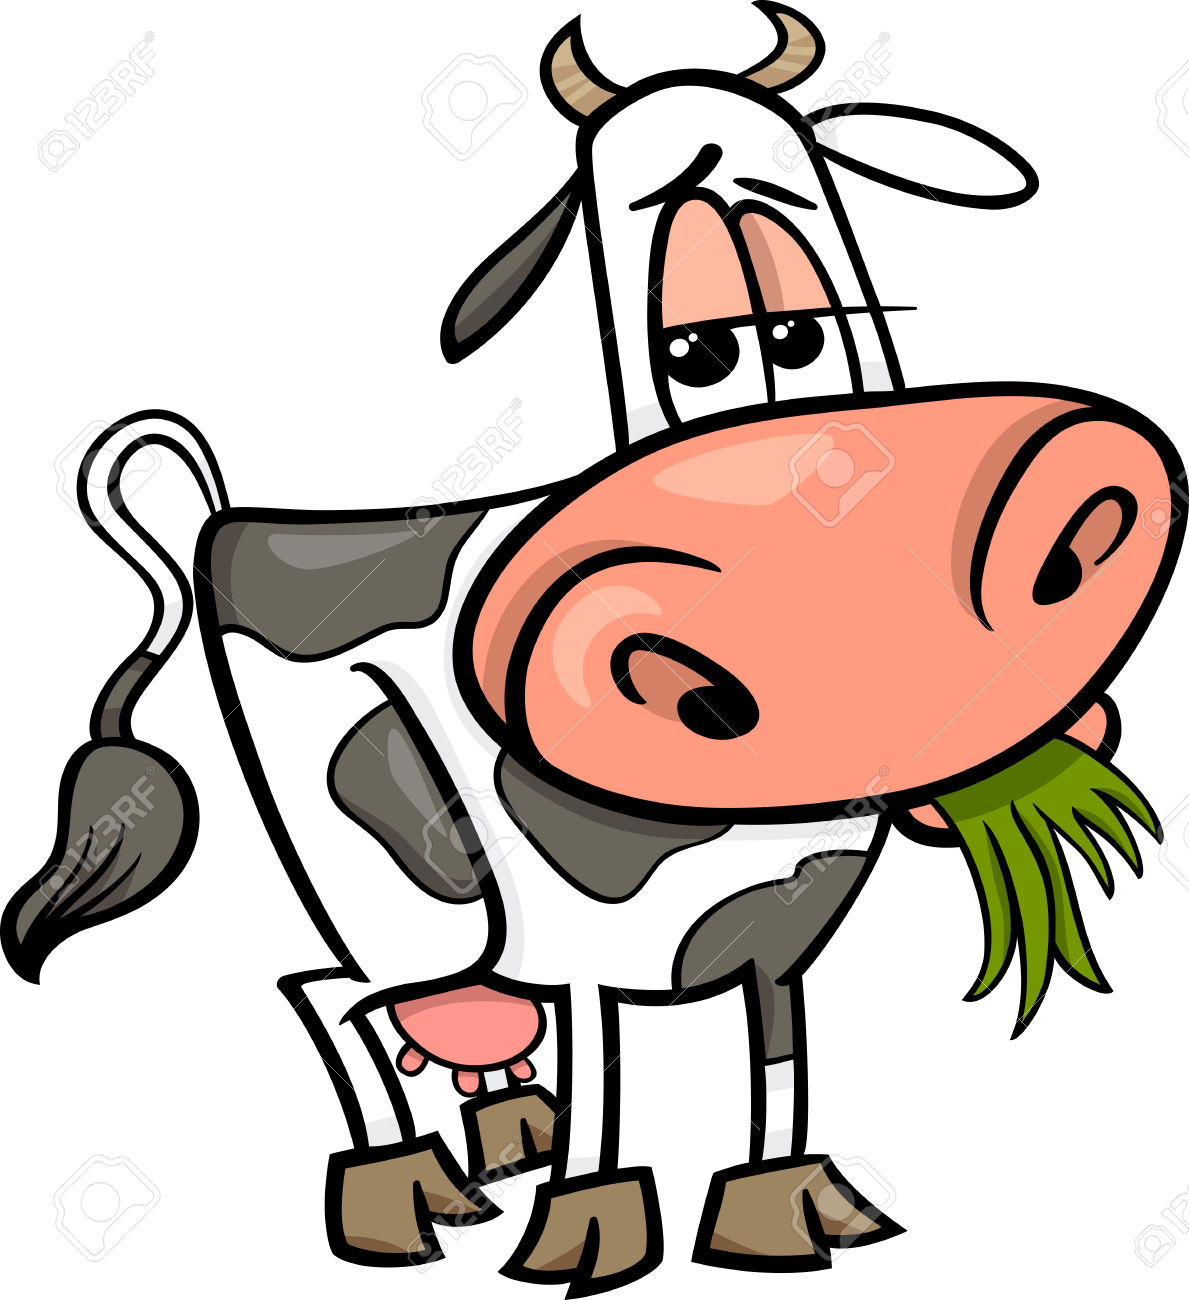 1189x1300 Farm Animals Clipart Cow Farm